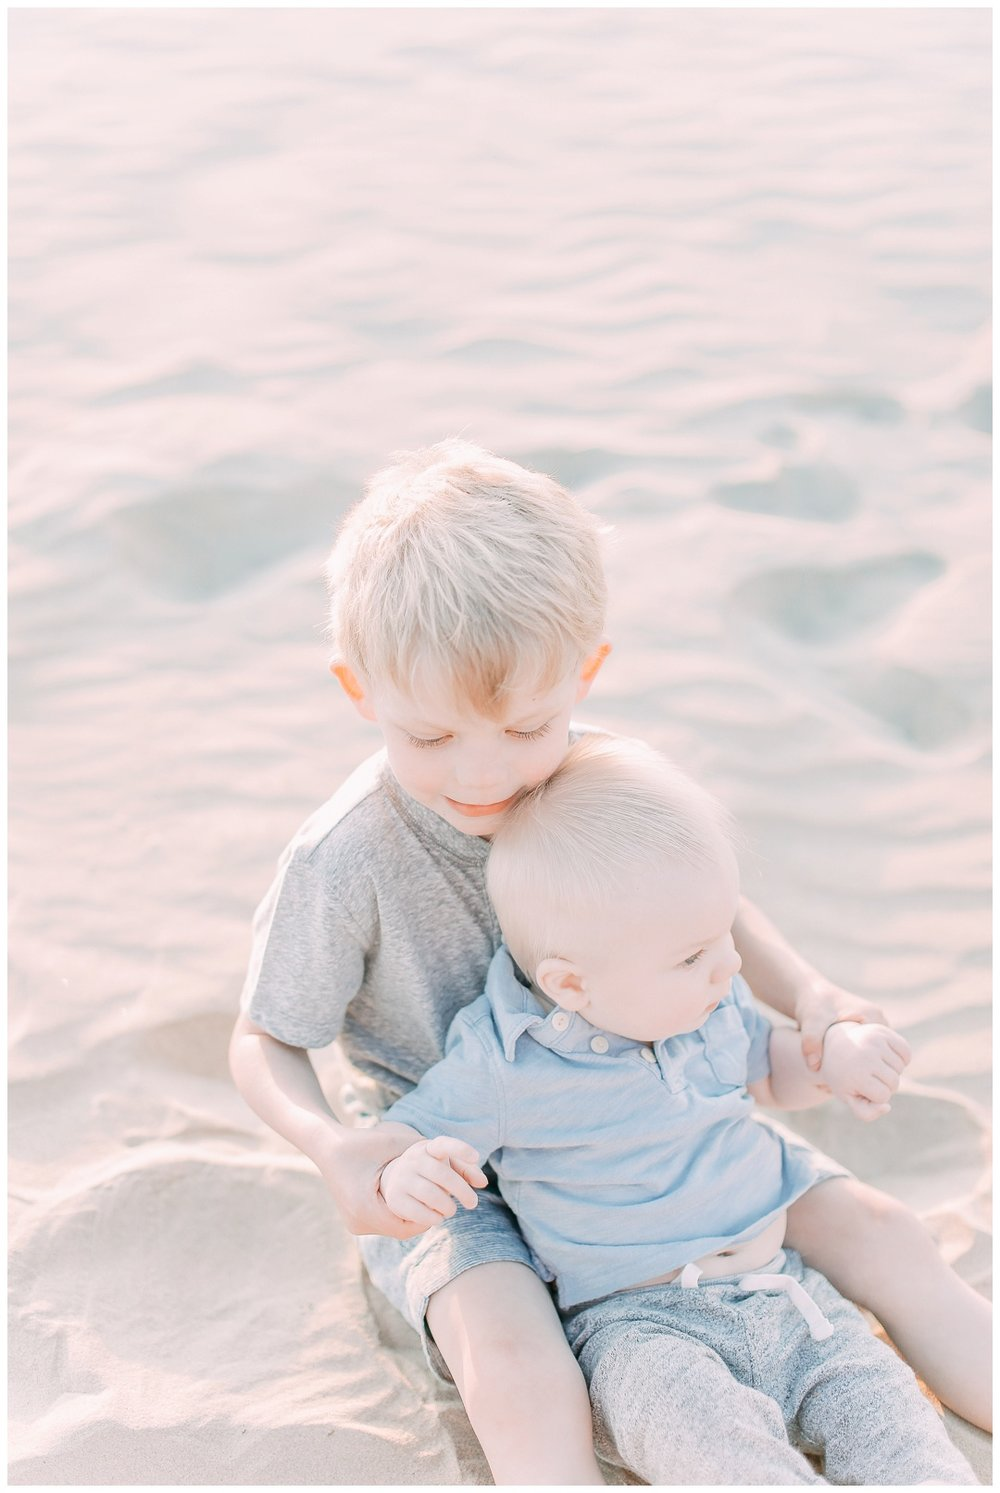 The_Bing_Famiy_Newport_Beach_Family_Photographer_Orange_County_Family_Photography_Cori_Kleckner_Photography_Orange_County_Family_Photographer_Family_Photos_Session__1352.jpg